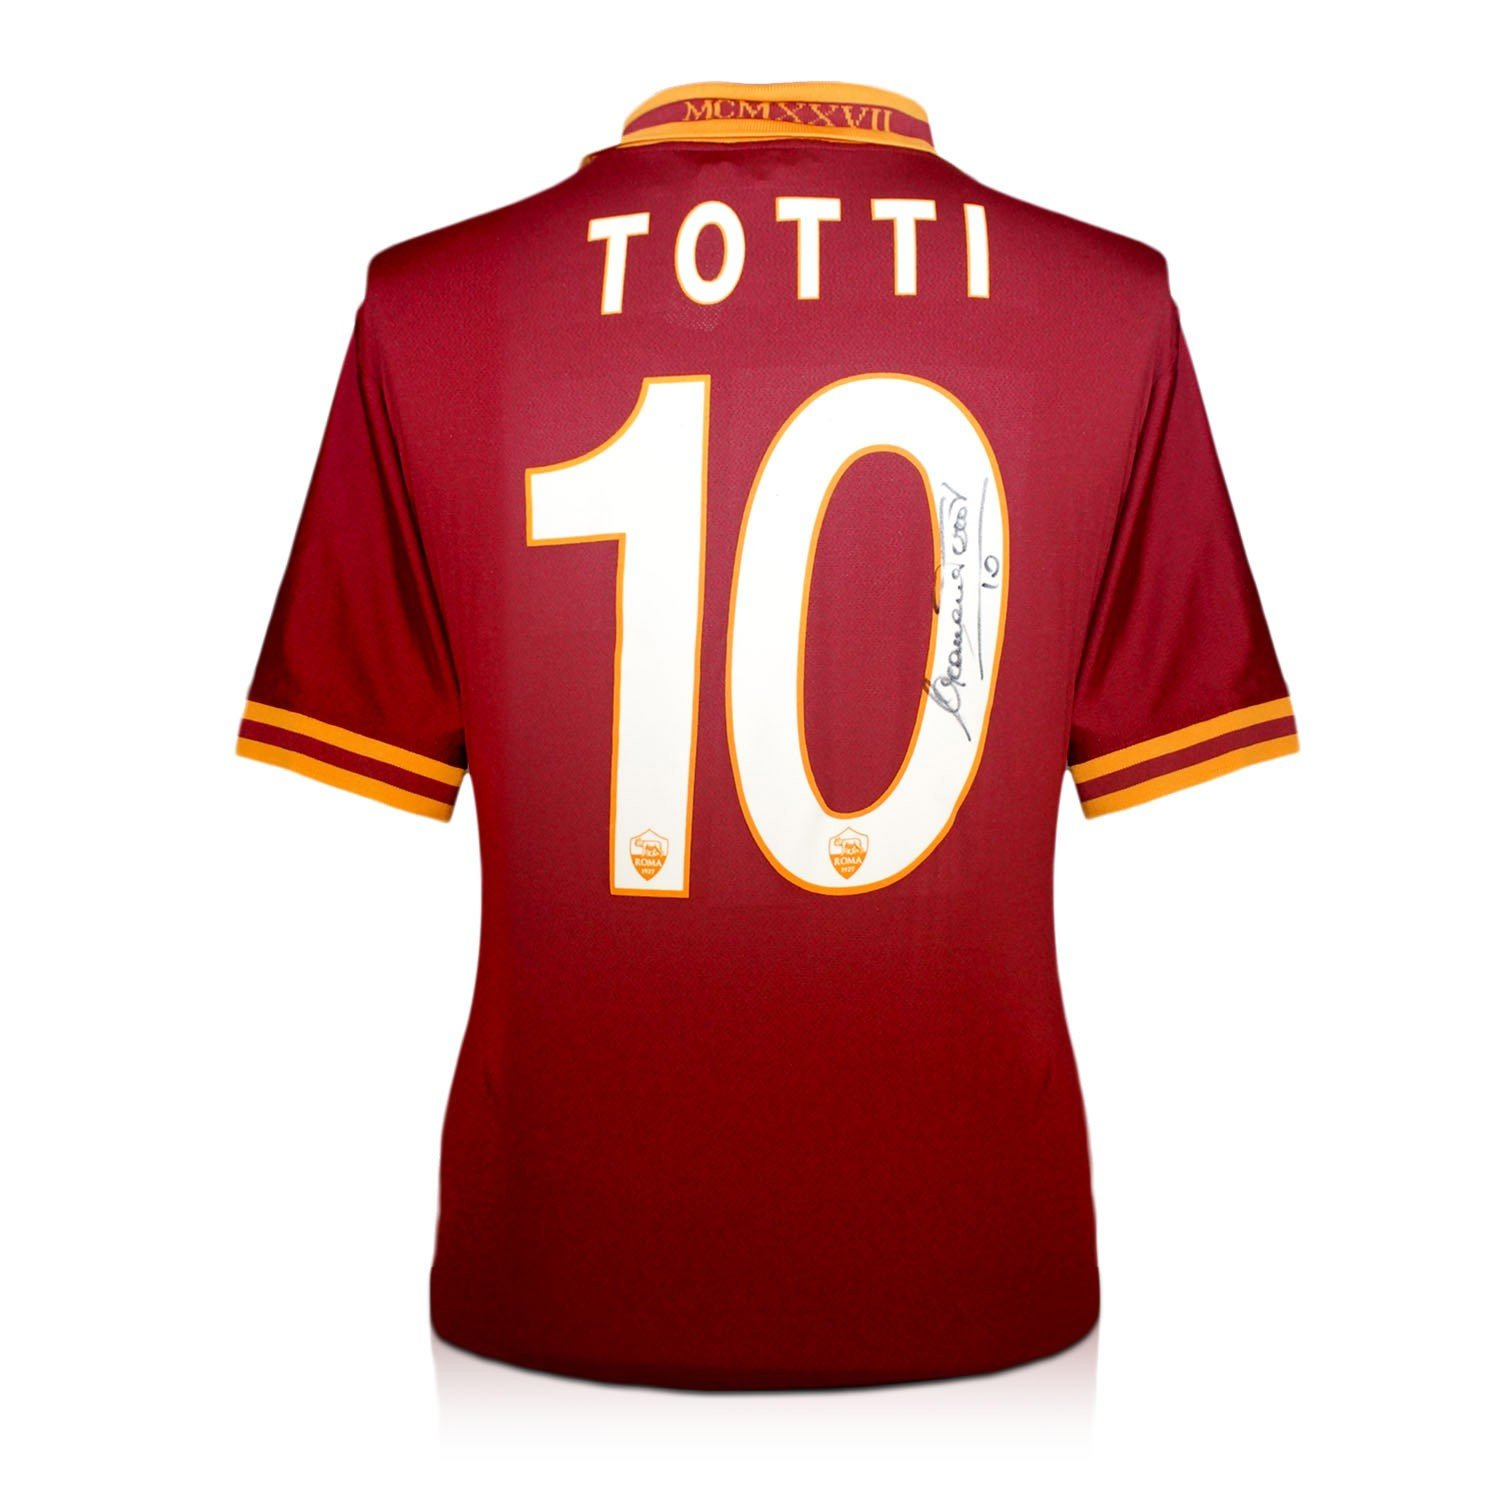 Signiert Francesco Totti AS Roma Fußball Trikot: Amazon.de: Sport ...